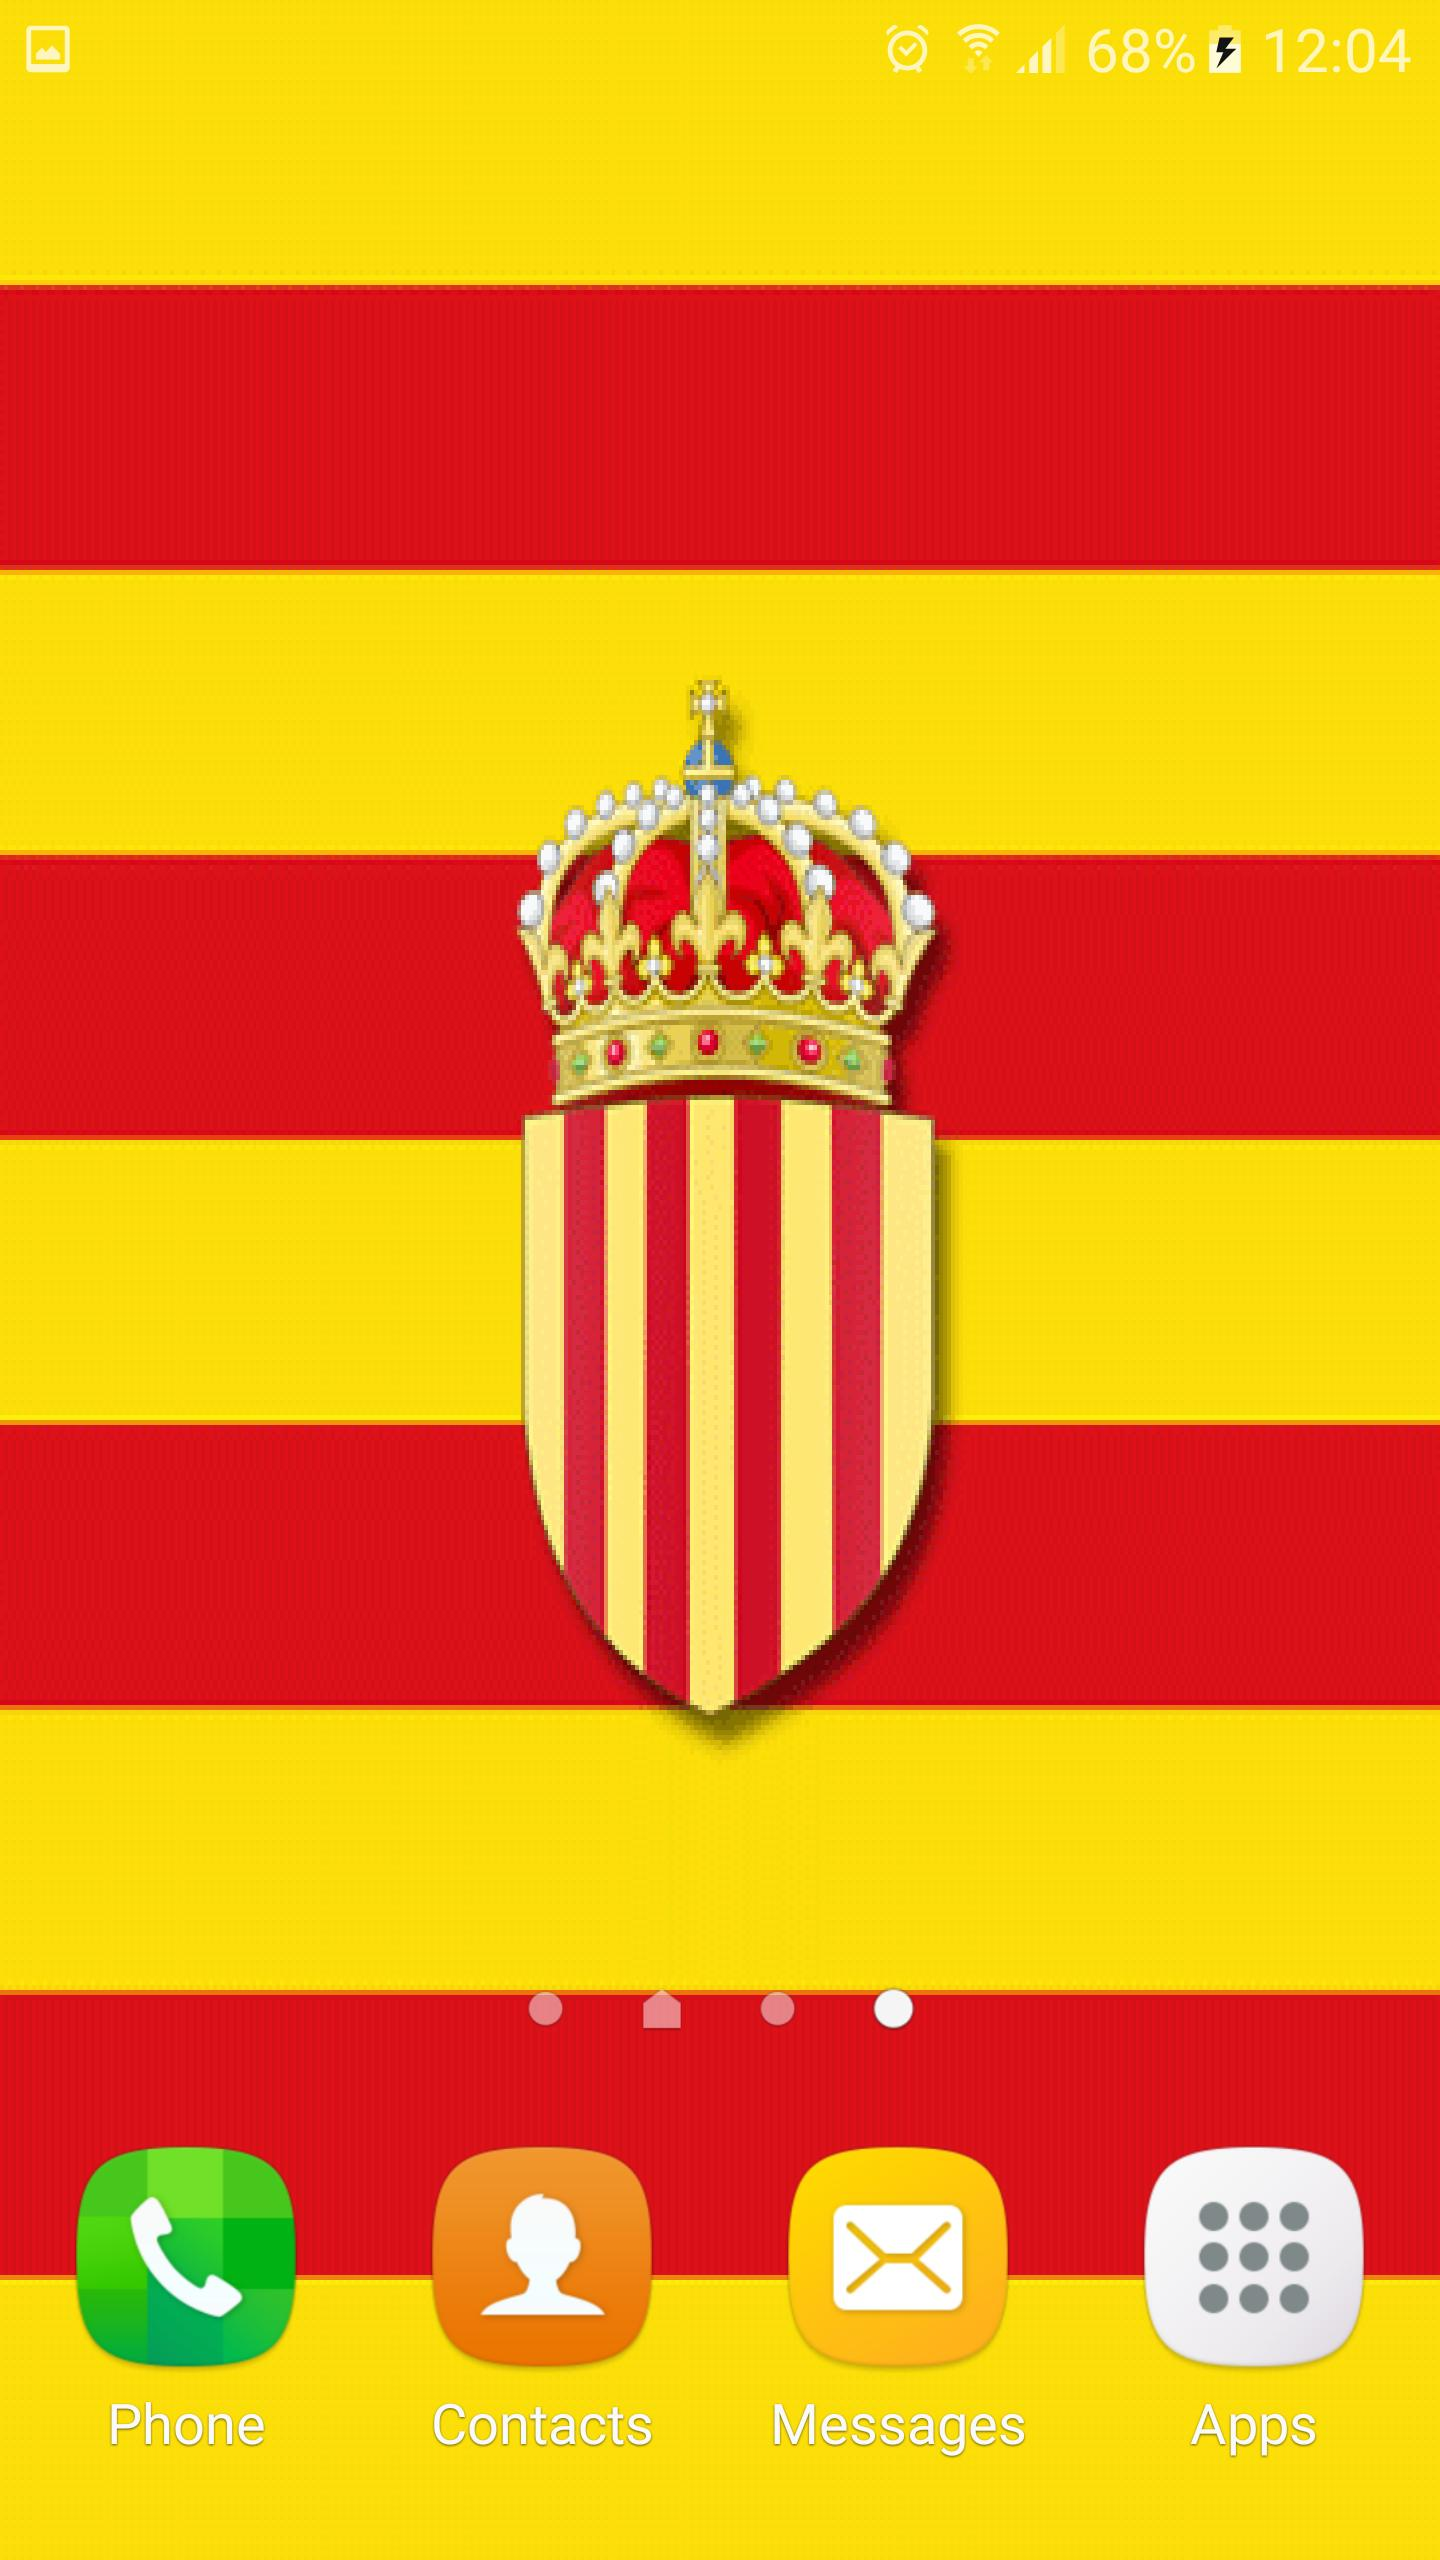 Catalan Flag Wallpaper for Android   APK Download 1440x2560